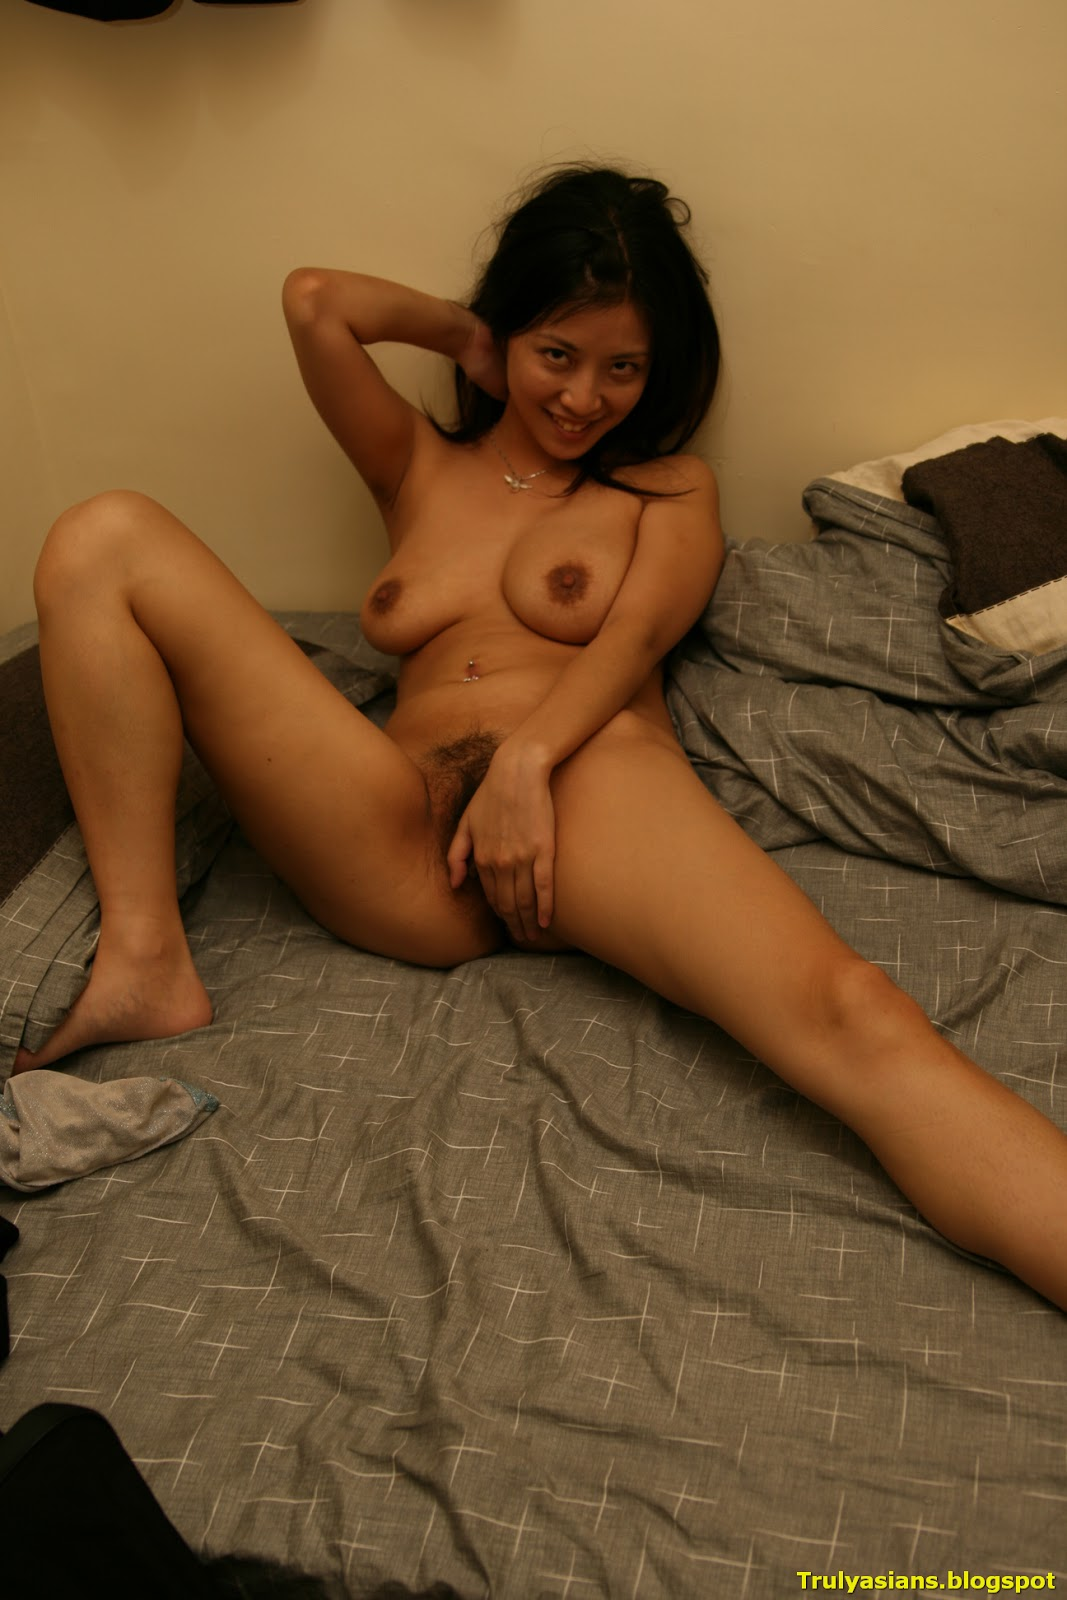 young asian big boobs girl naked | kingedwardandthebdsband